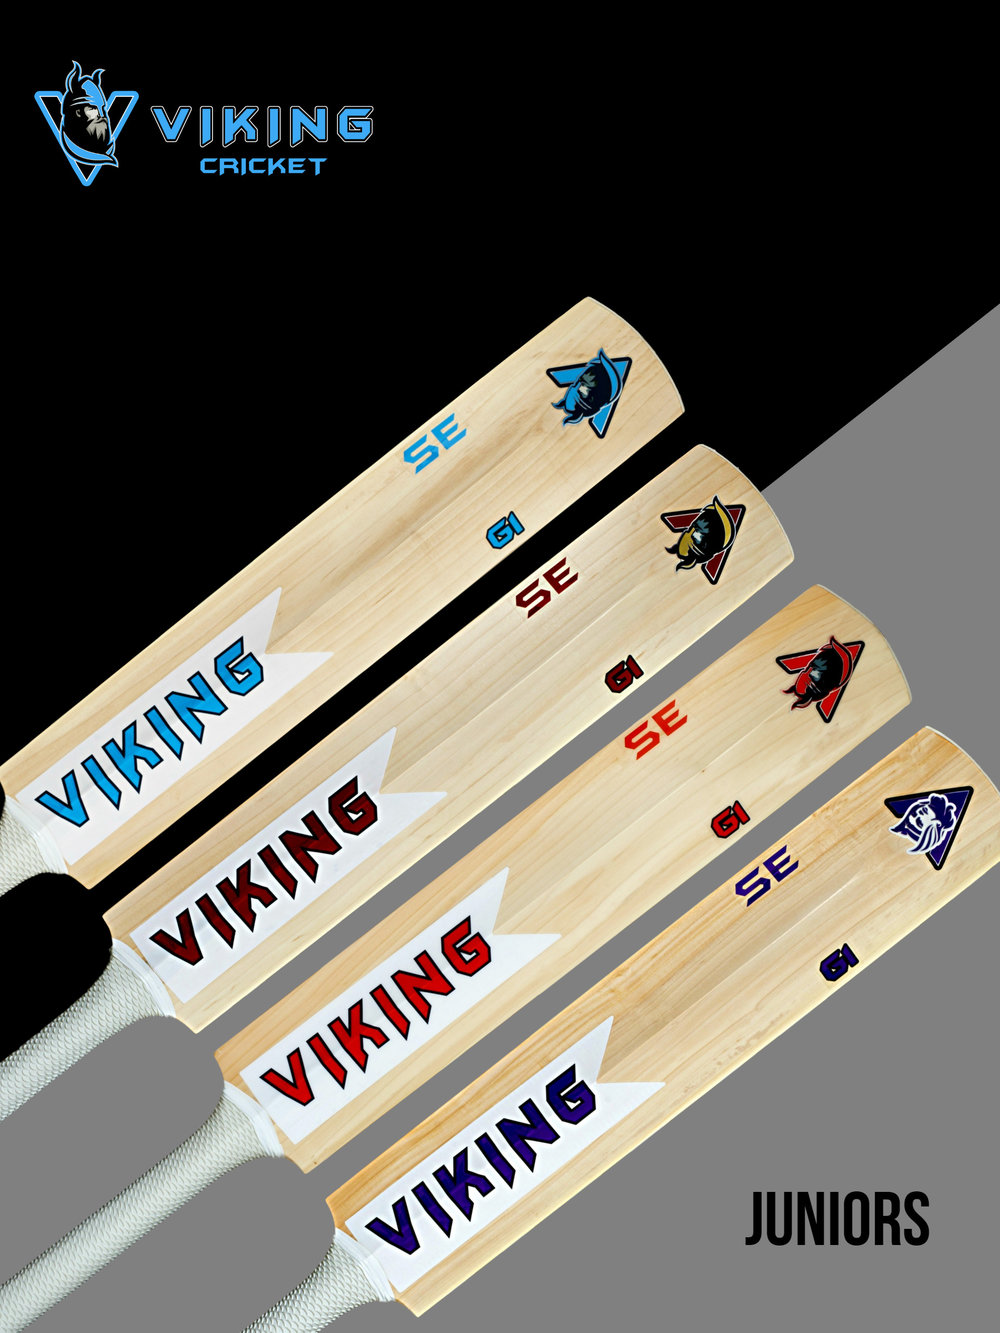 - Whether it be Odin, Thor, Jorvik or Valkyrie, as a Junior you can choose which bat you would like.It will be made from the same English willow our senior bats are made from, so you know you'll be batting with the best.You'll have a bat that doesn't just look great but more importantly allows you to play your shots and grow in confidence as a cricketer.Our master batmakers have year's of experience in knowing what makes a great bat. So all you need to do is decide which Viking your going to take out to bat.Available in English willow grades 1 or 2In sizes Harrow, 6, 5 and 4 (other sizes available on request.)